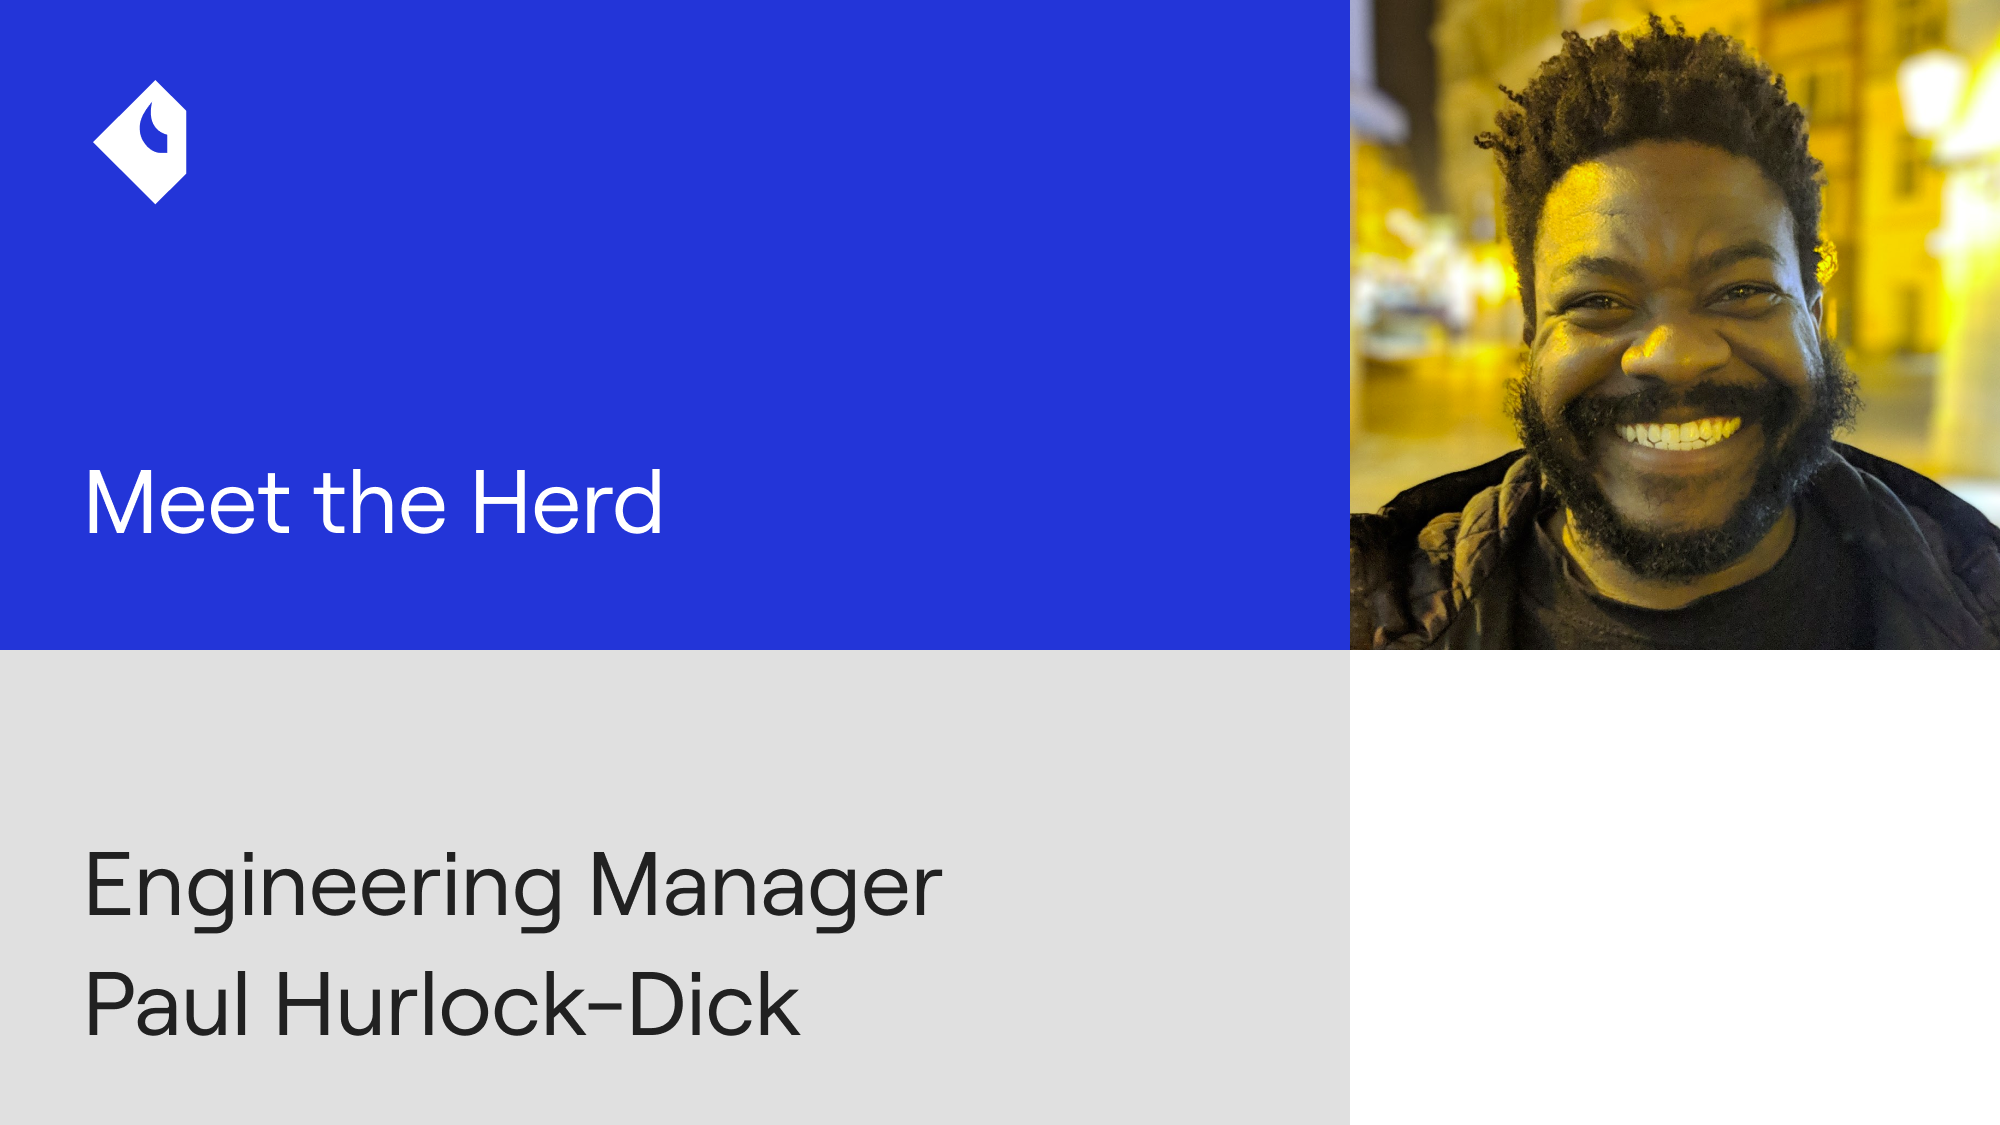 Meet the Herd: Q&A with Engineering Manager Paul Hurlock-Dick